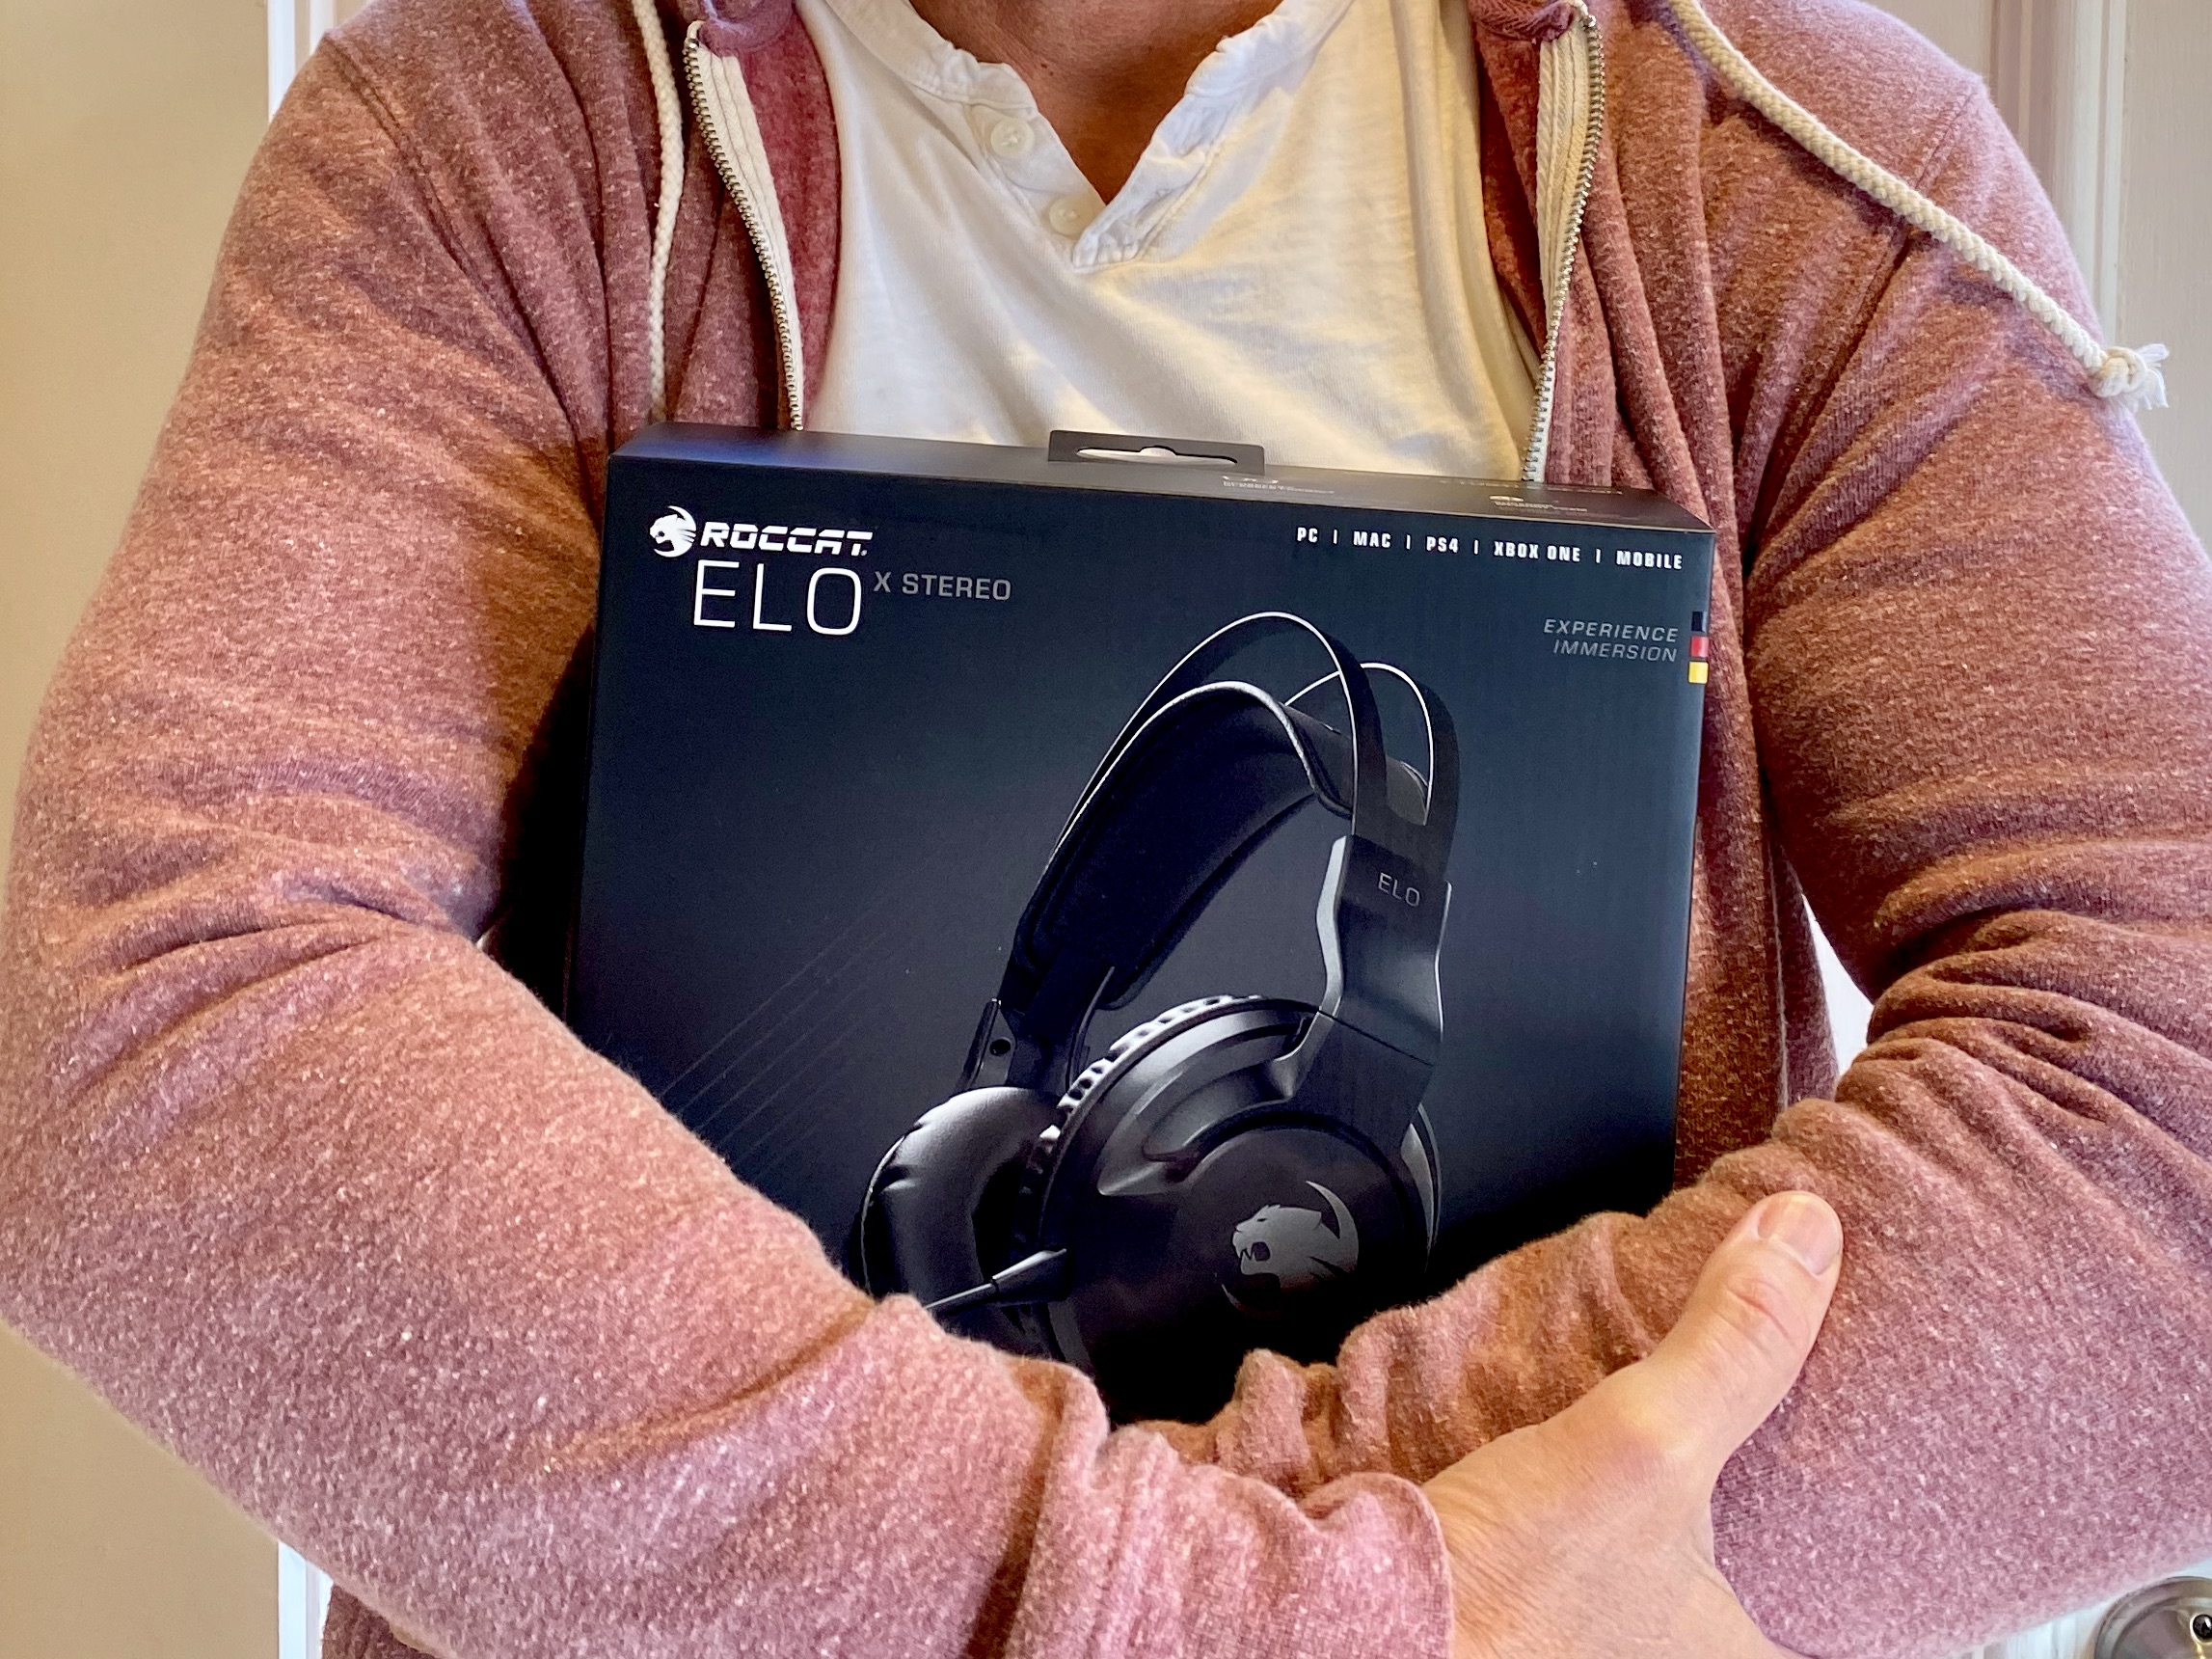 Man holding The ROCCAT Elo X Stereo Gaming Headset in his arms